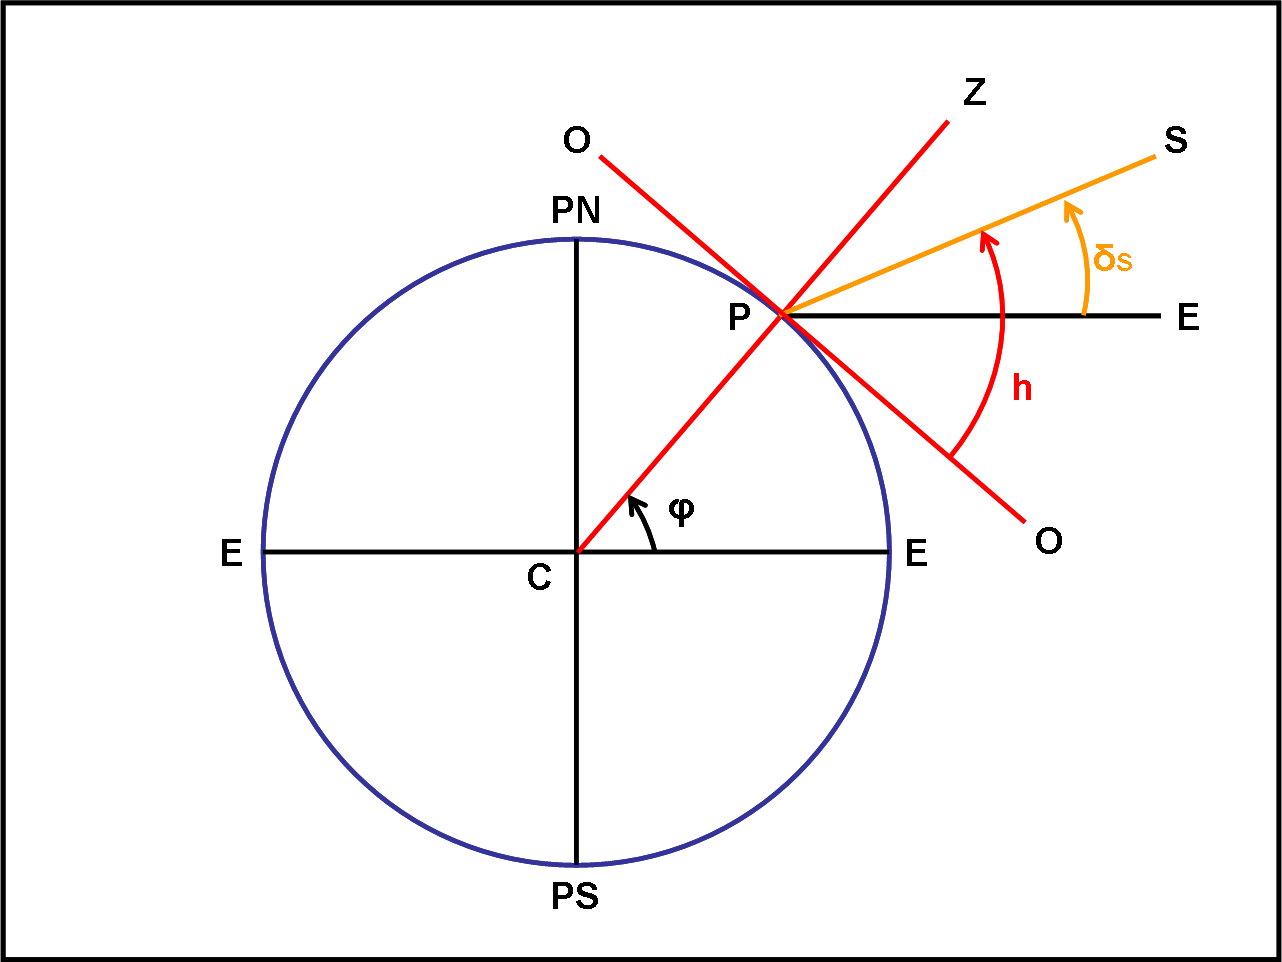 fig.1